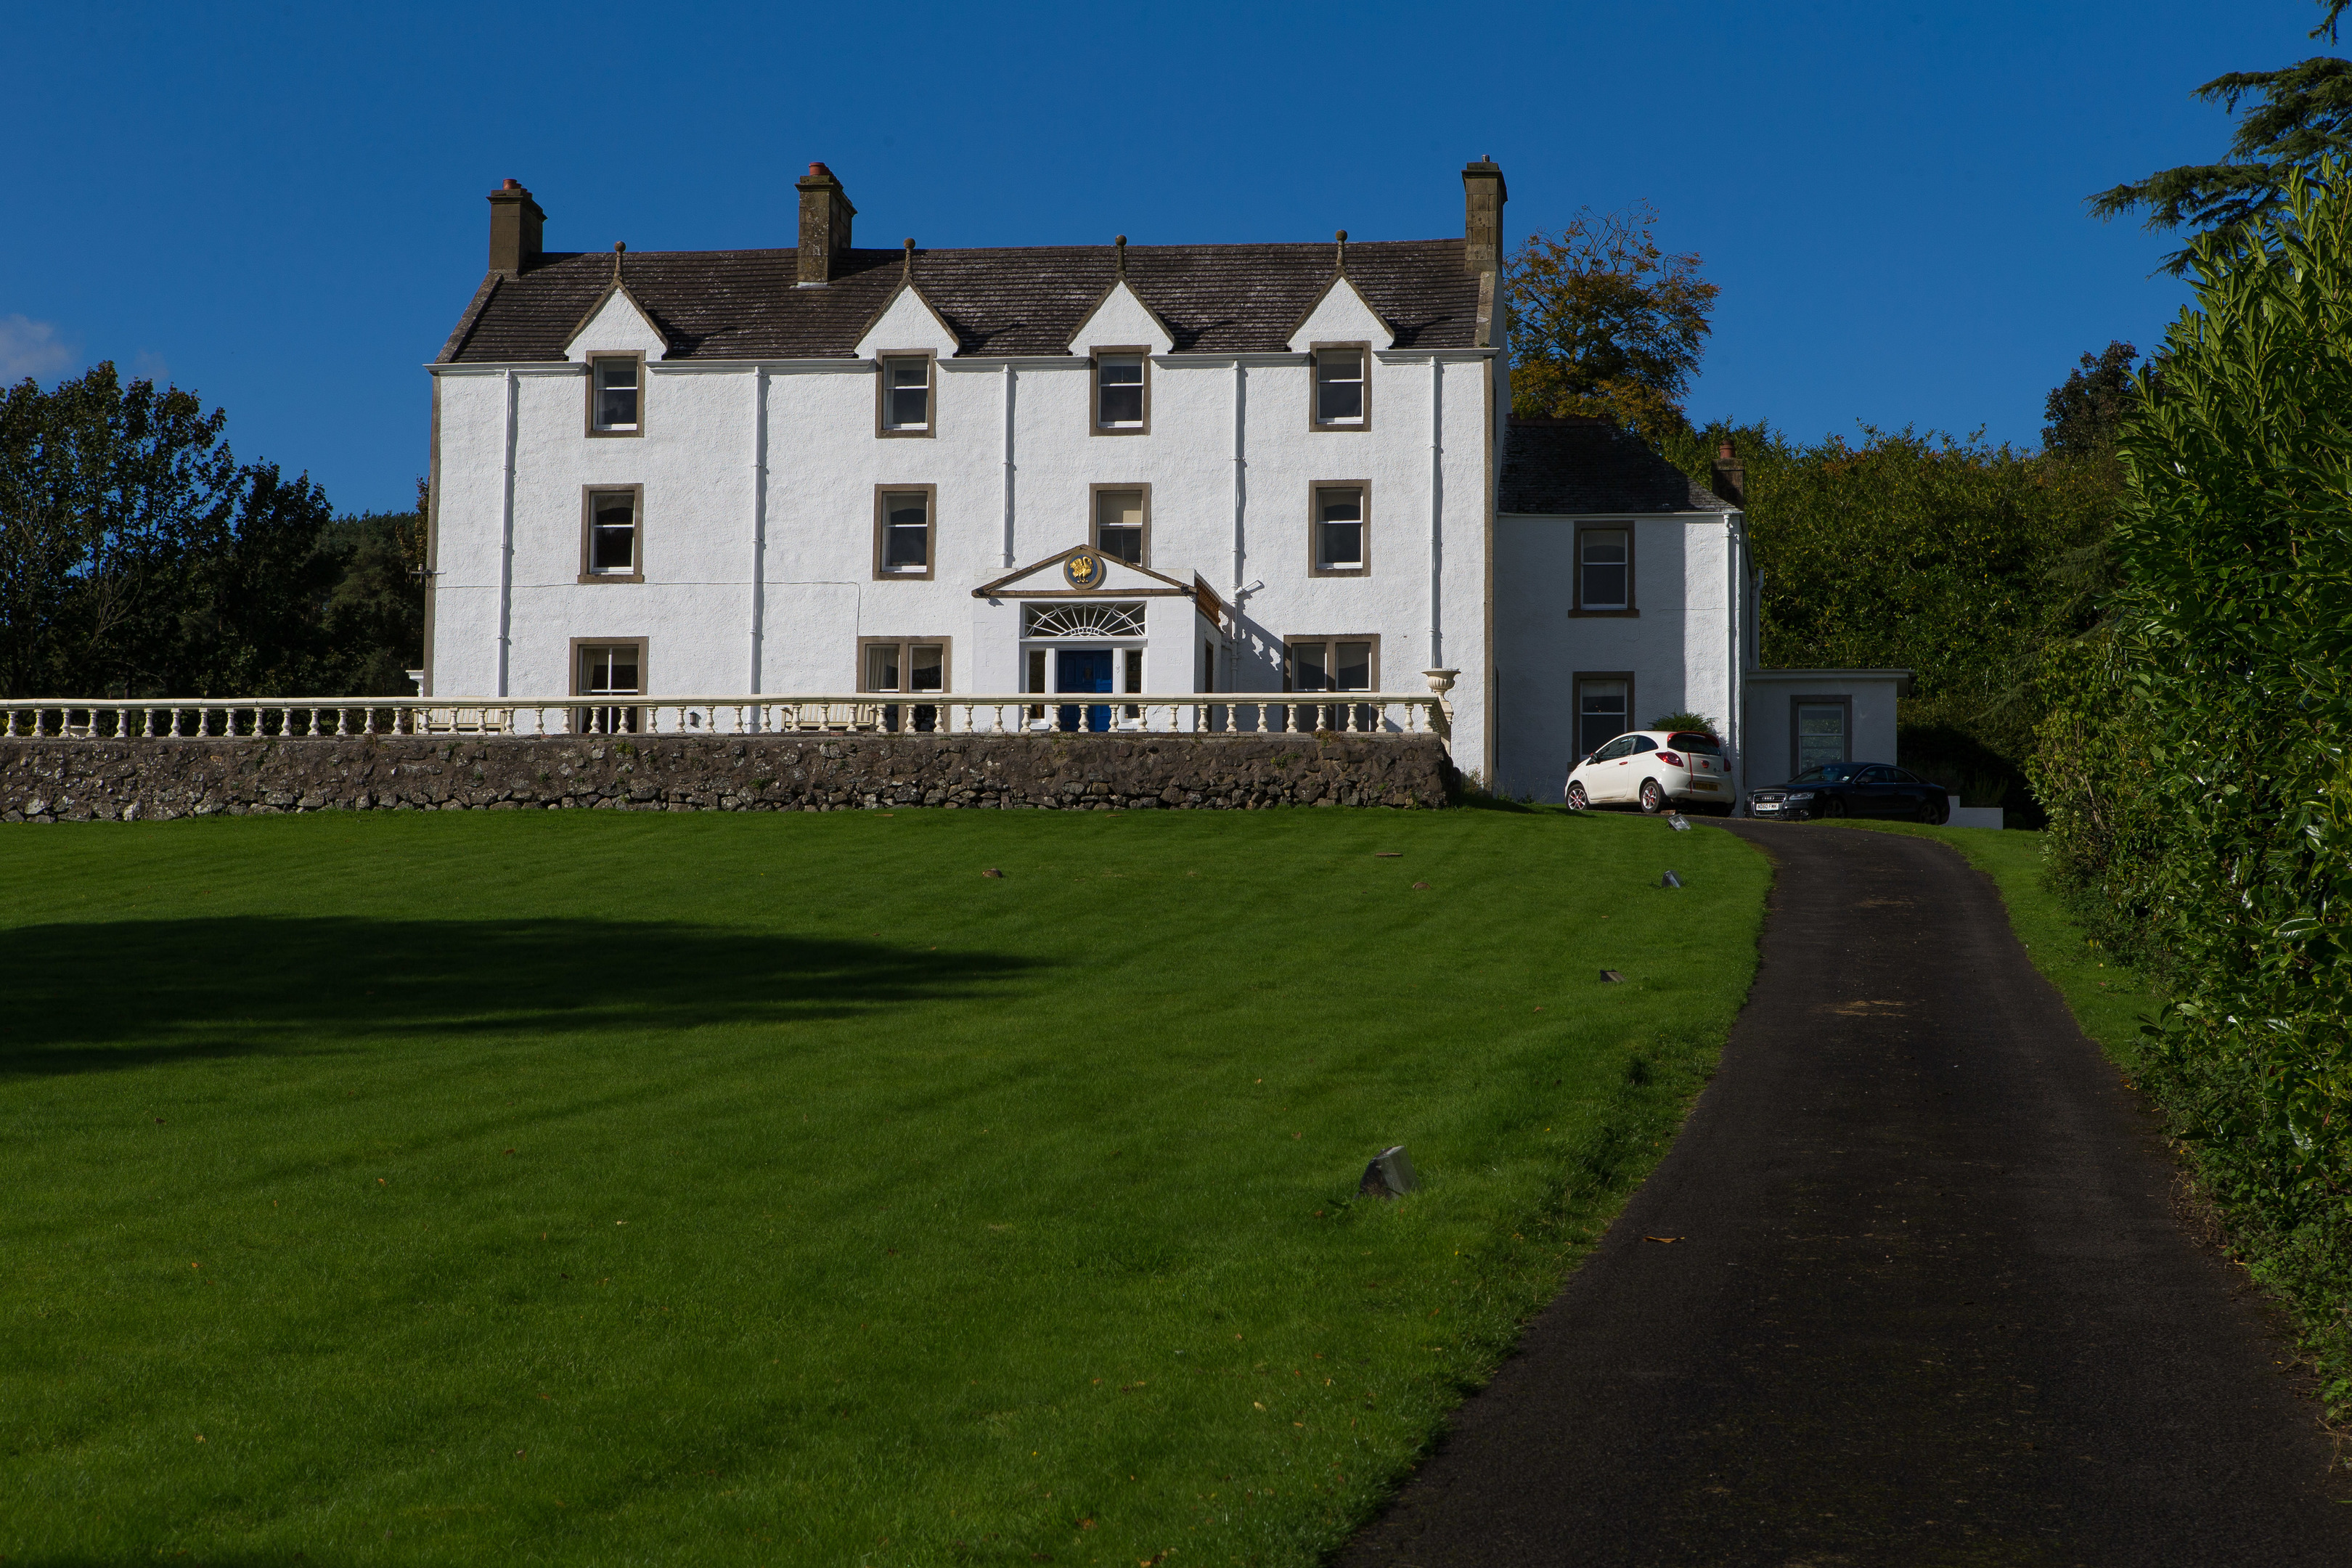 Weddings at Carphin House have caused upset in the nearby rural community of Luthrie